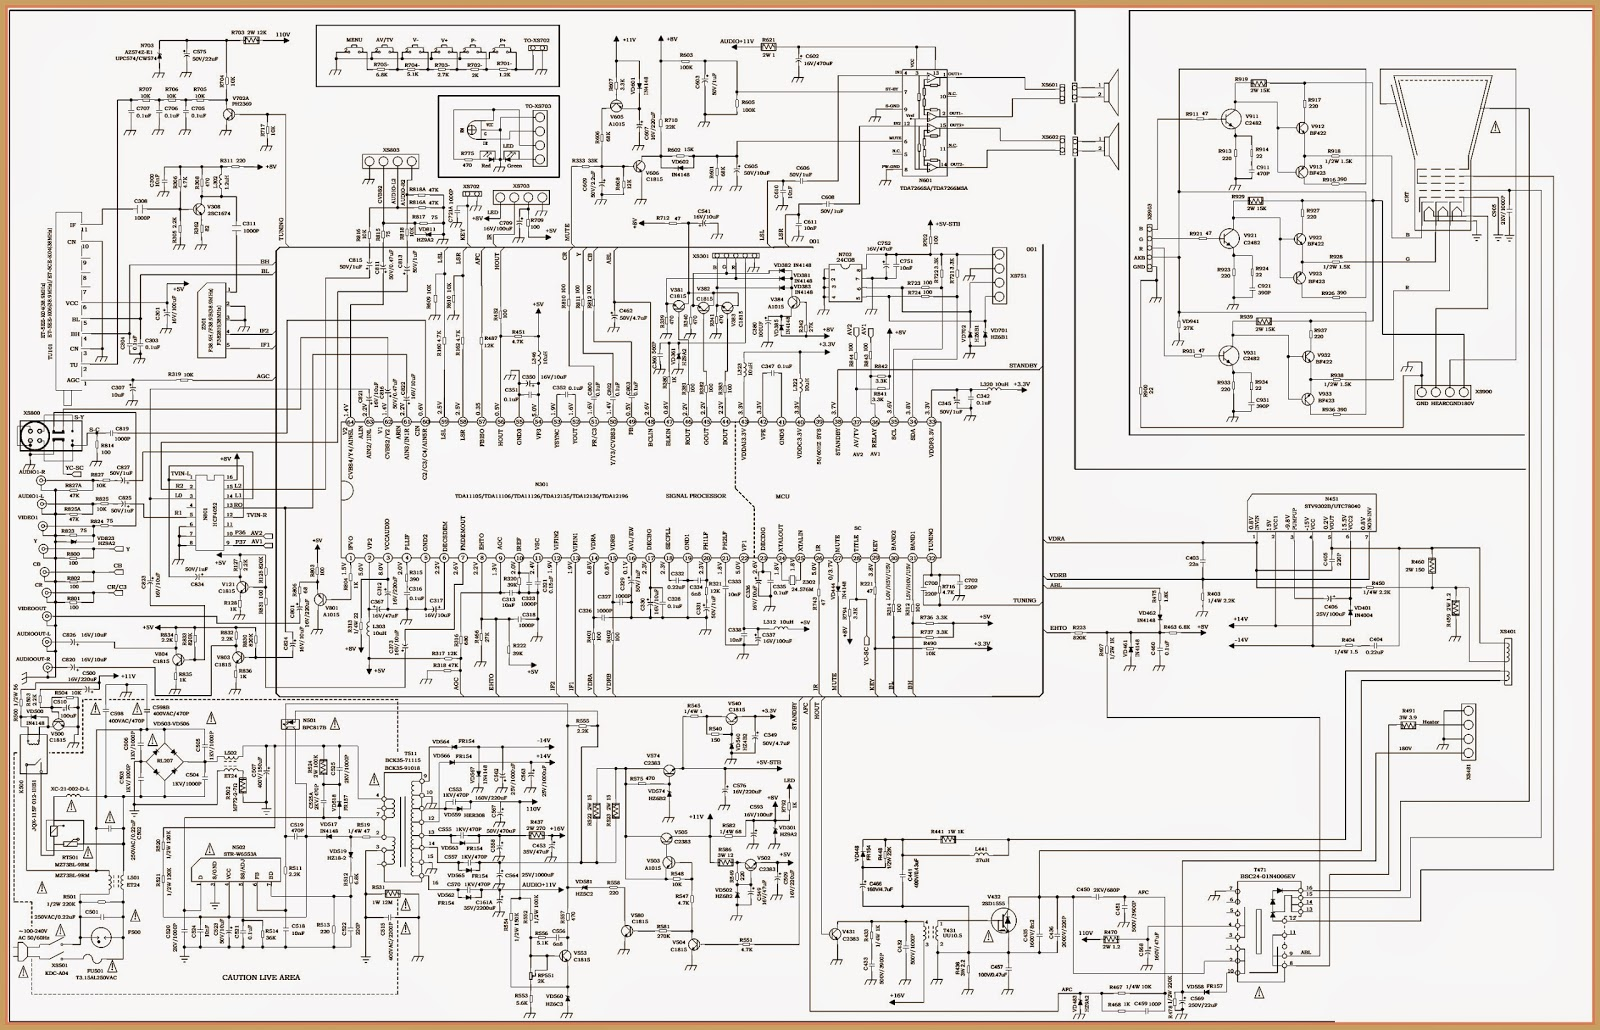 wiring diagram for televisions lg tv circuit diagram the wiring diagram philips tv circuit diagram vidim wiring diagram circuit diagram